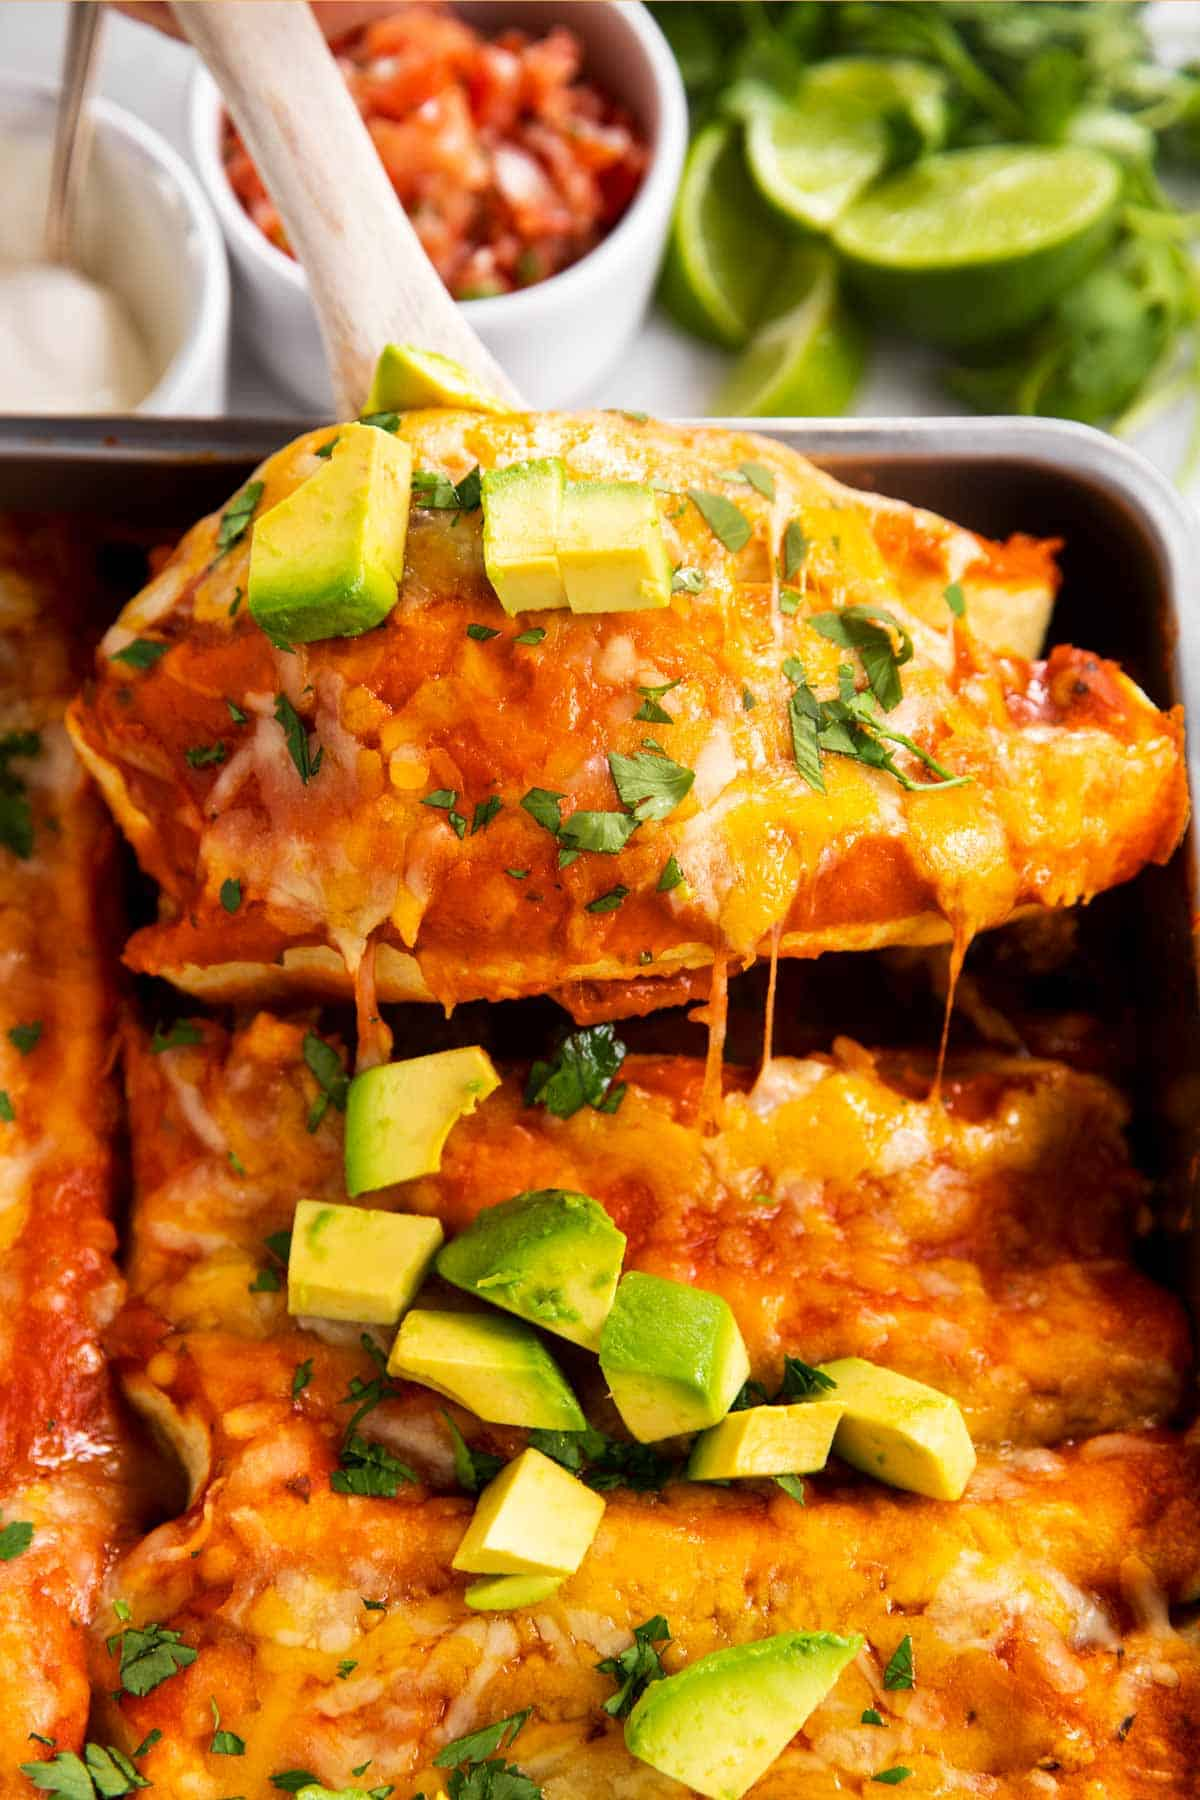 lifting two chicken enchiladas out of casserole dish with wooden spoon